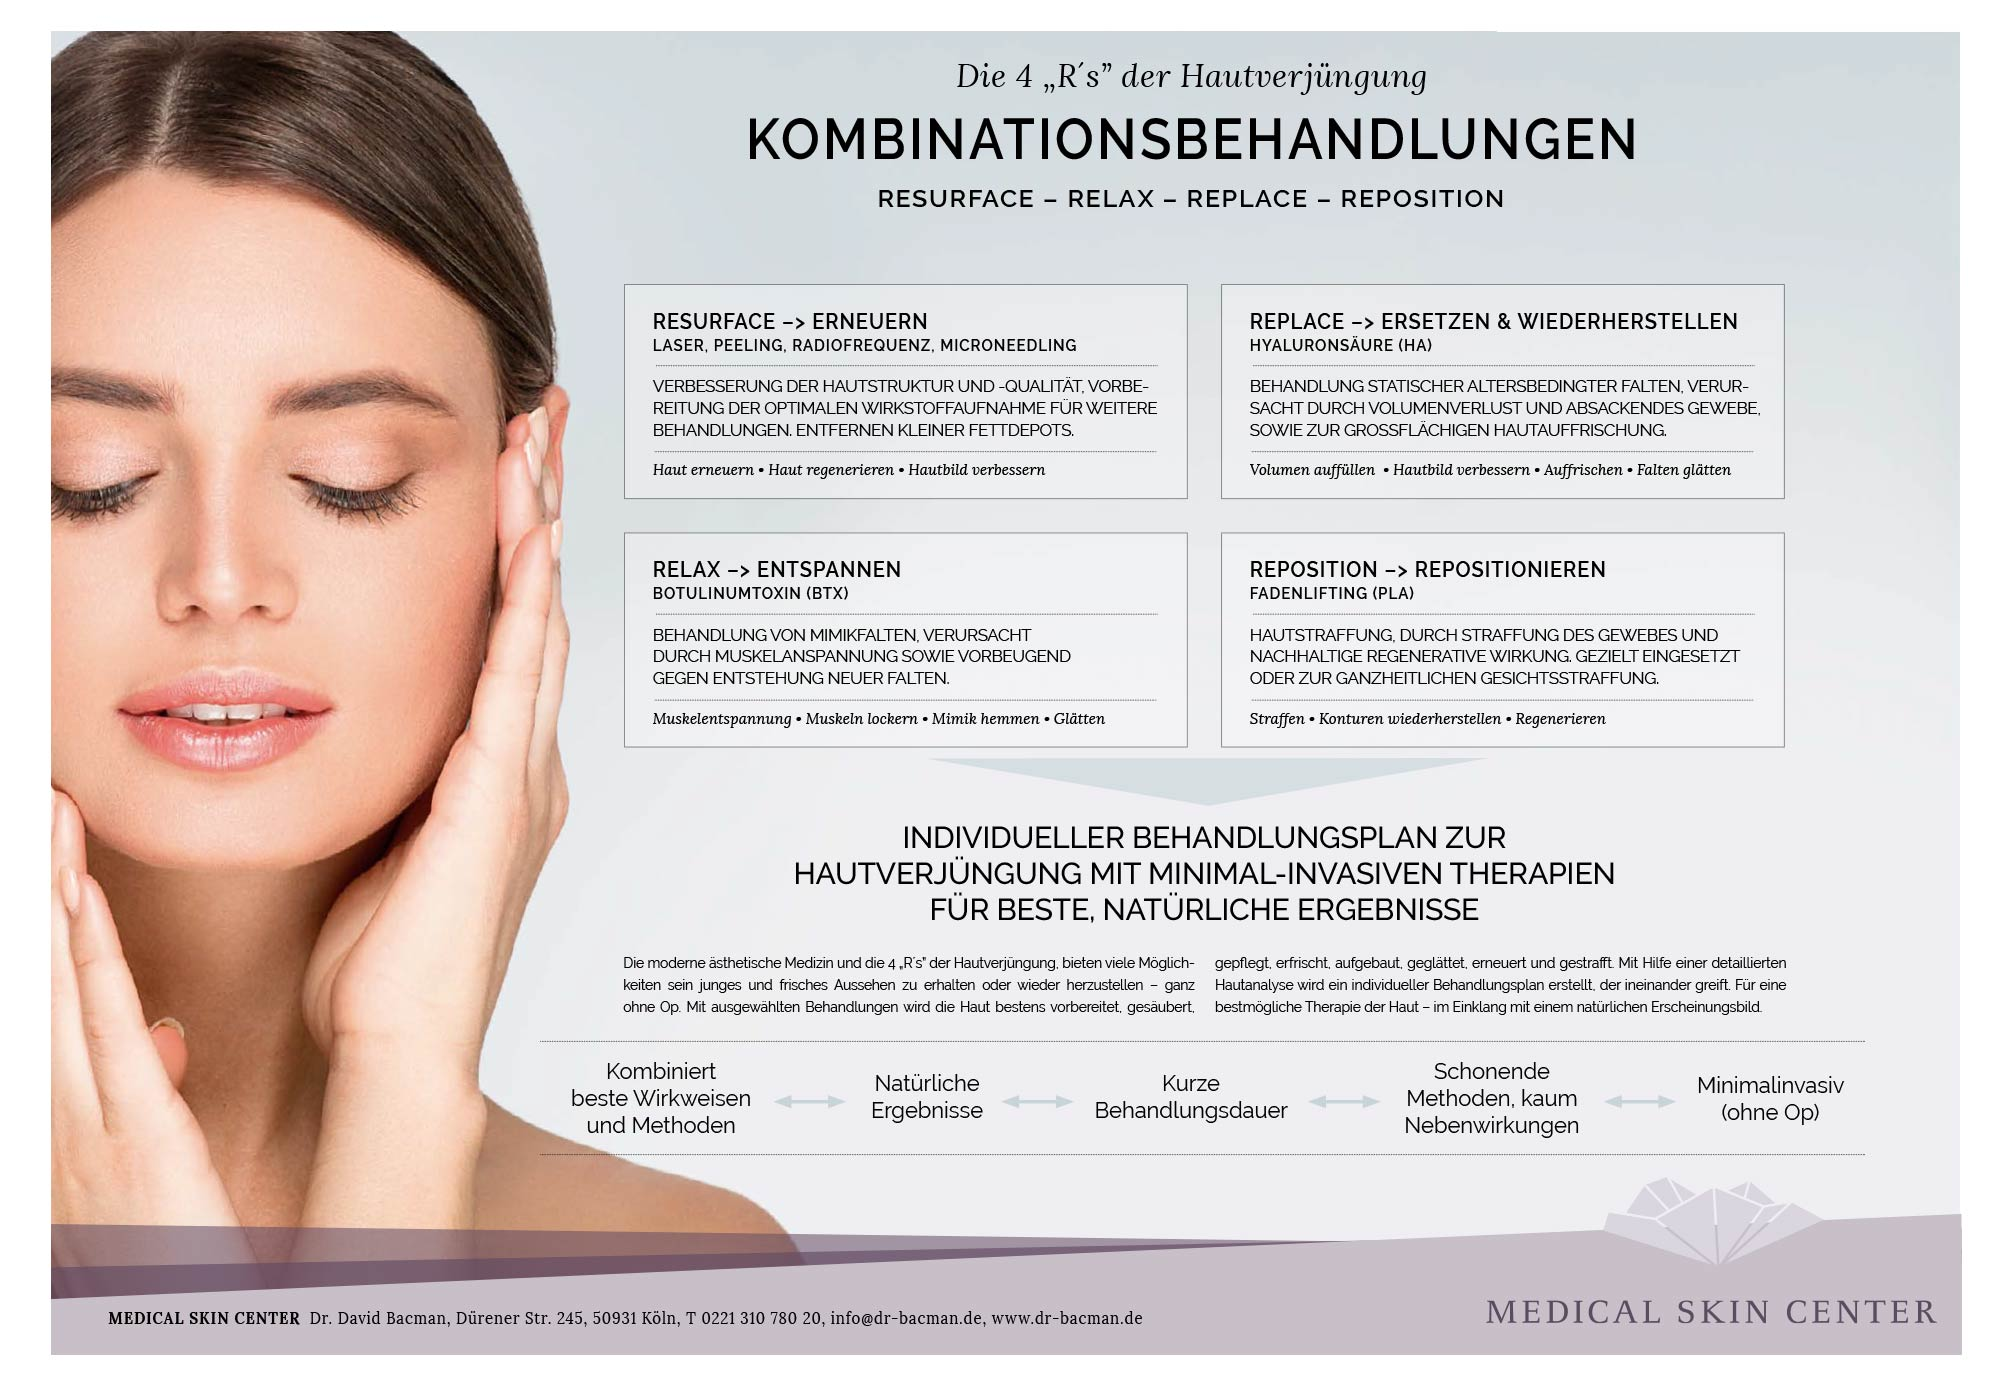 Hautarzt Spezialist Medical Skin Center Dermatologie Ästhetik Anti Aging In Köln